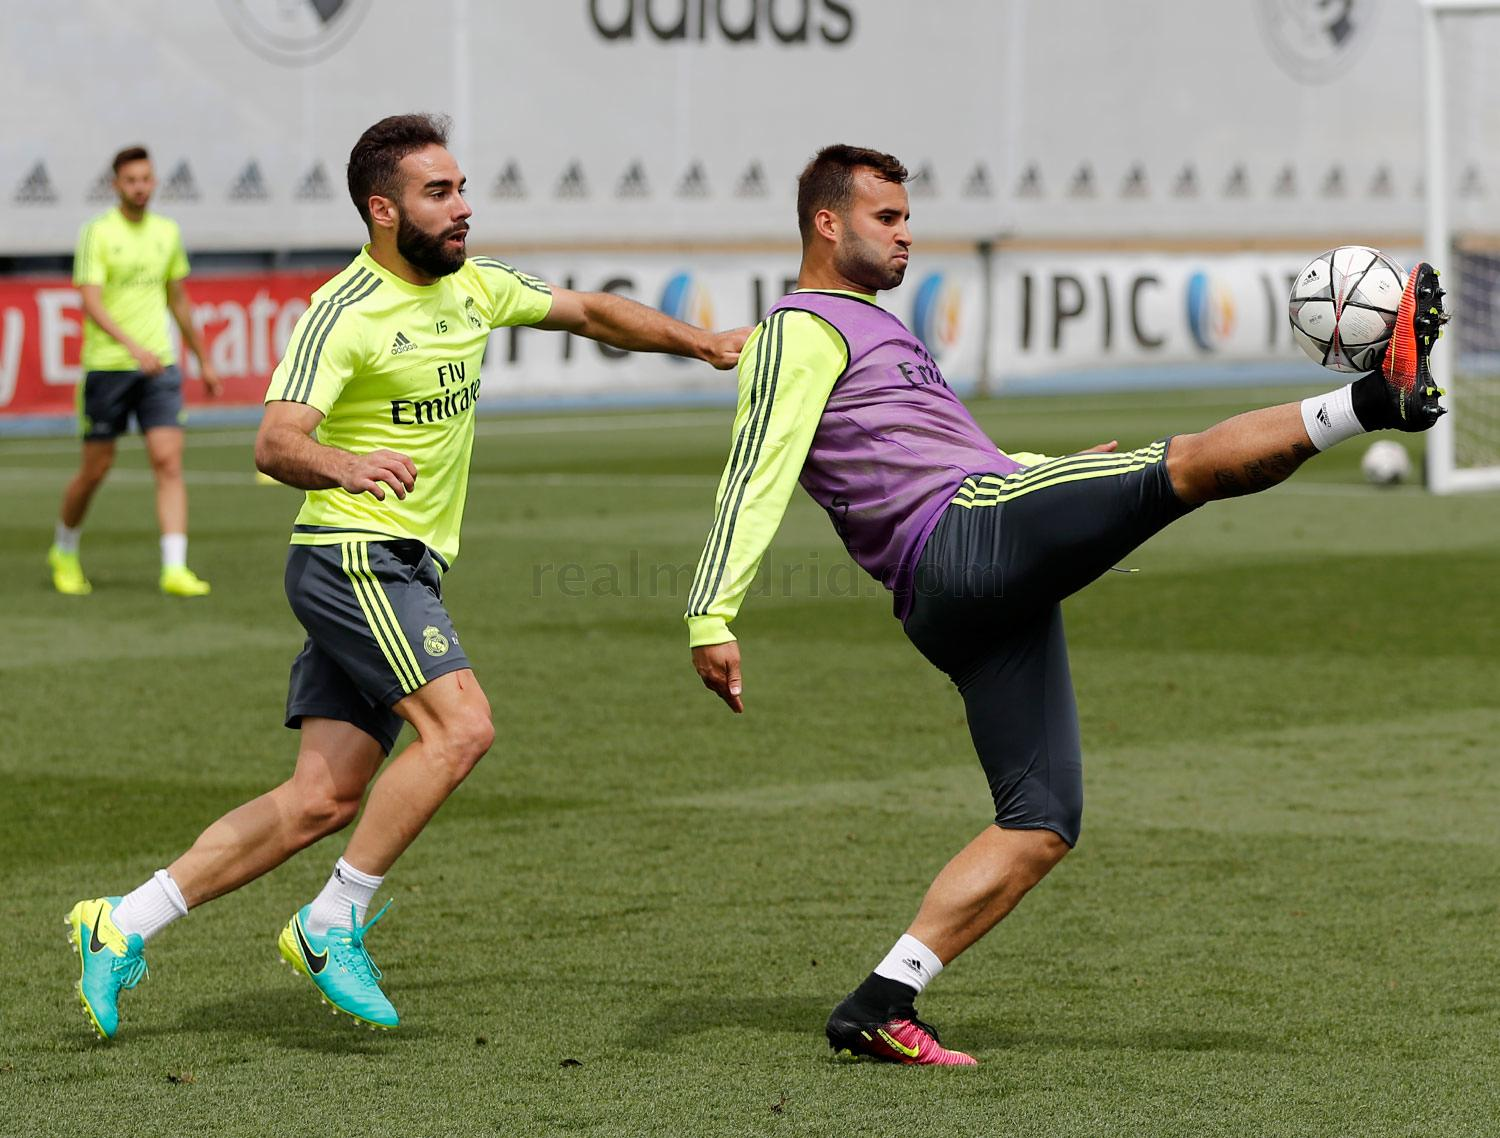 Real Madrid - Entrenamiento del Real Madrid - 25-05-2016